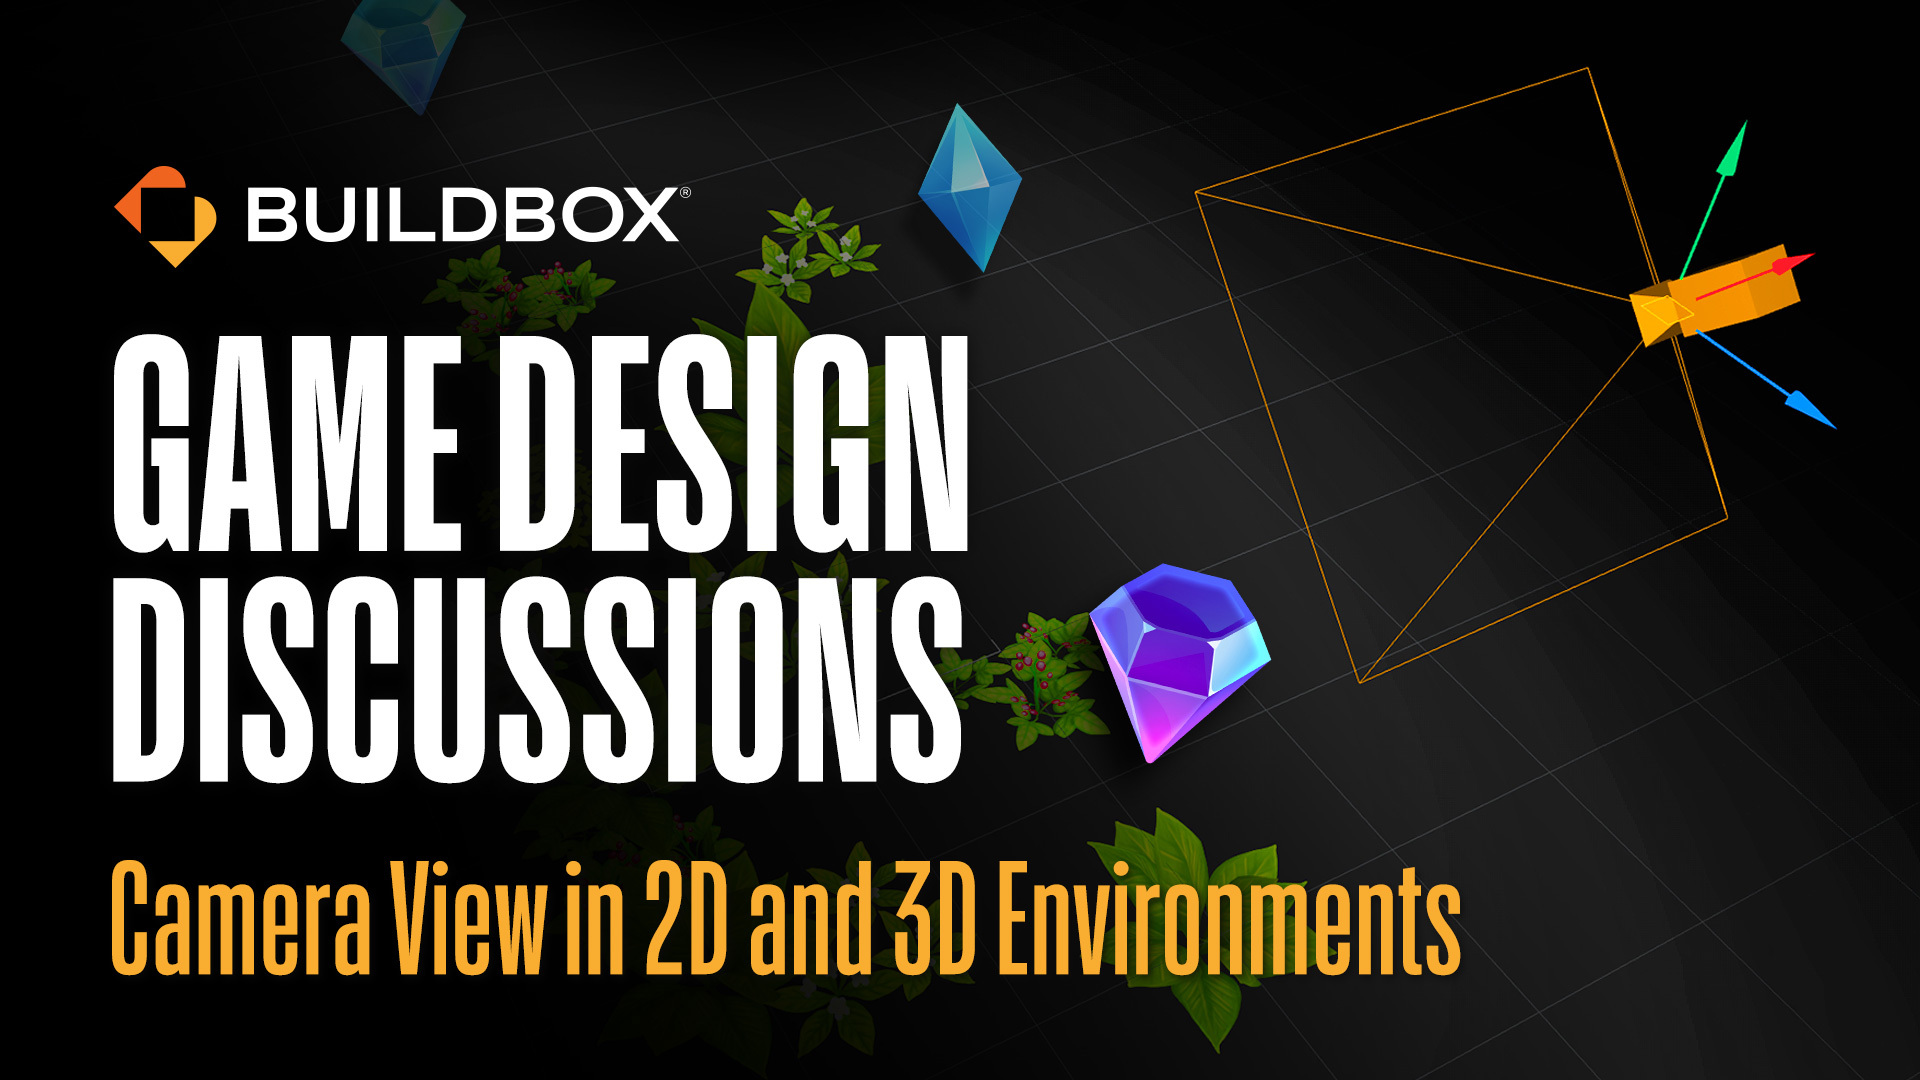 Game Design Discussions Episode 1: Camera Views in 2D and 3D Environments